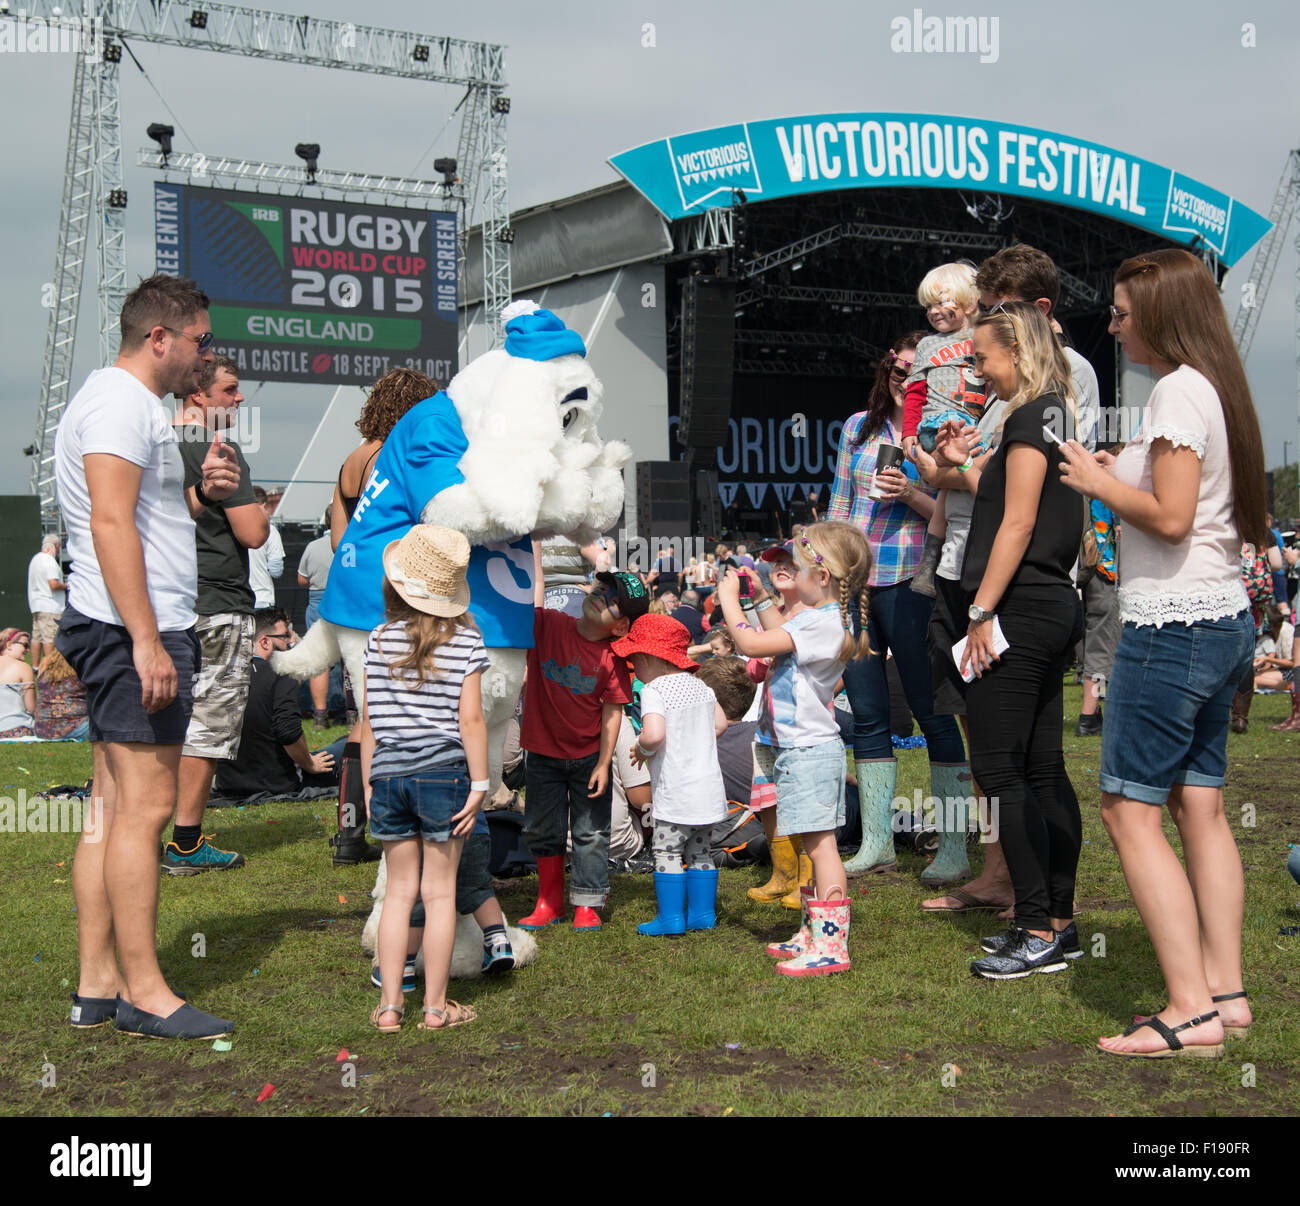 Portsmouth, UK. 29th August 2015. Victorious Festival - Saturday. There are plenty of kids present, and being entertained, Stock Photo